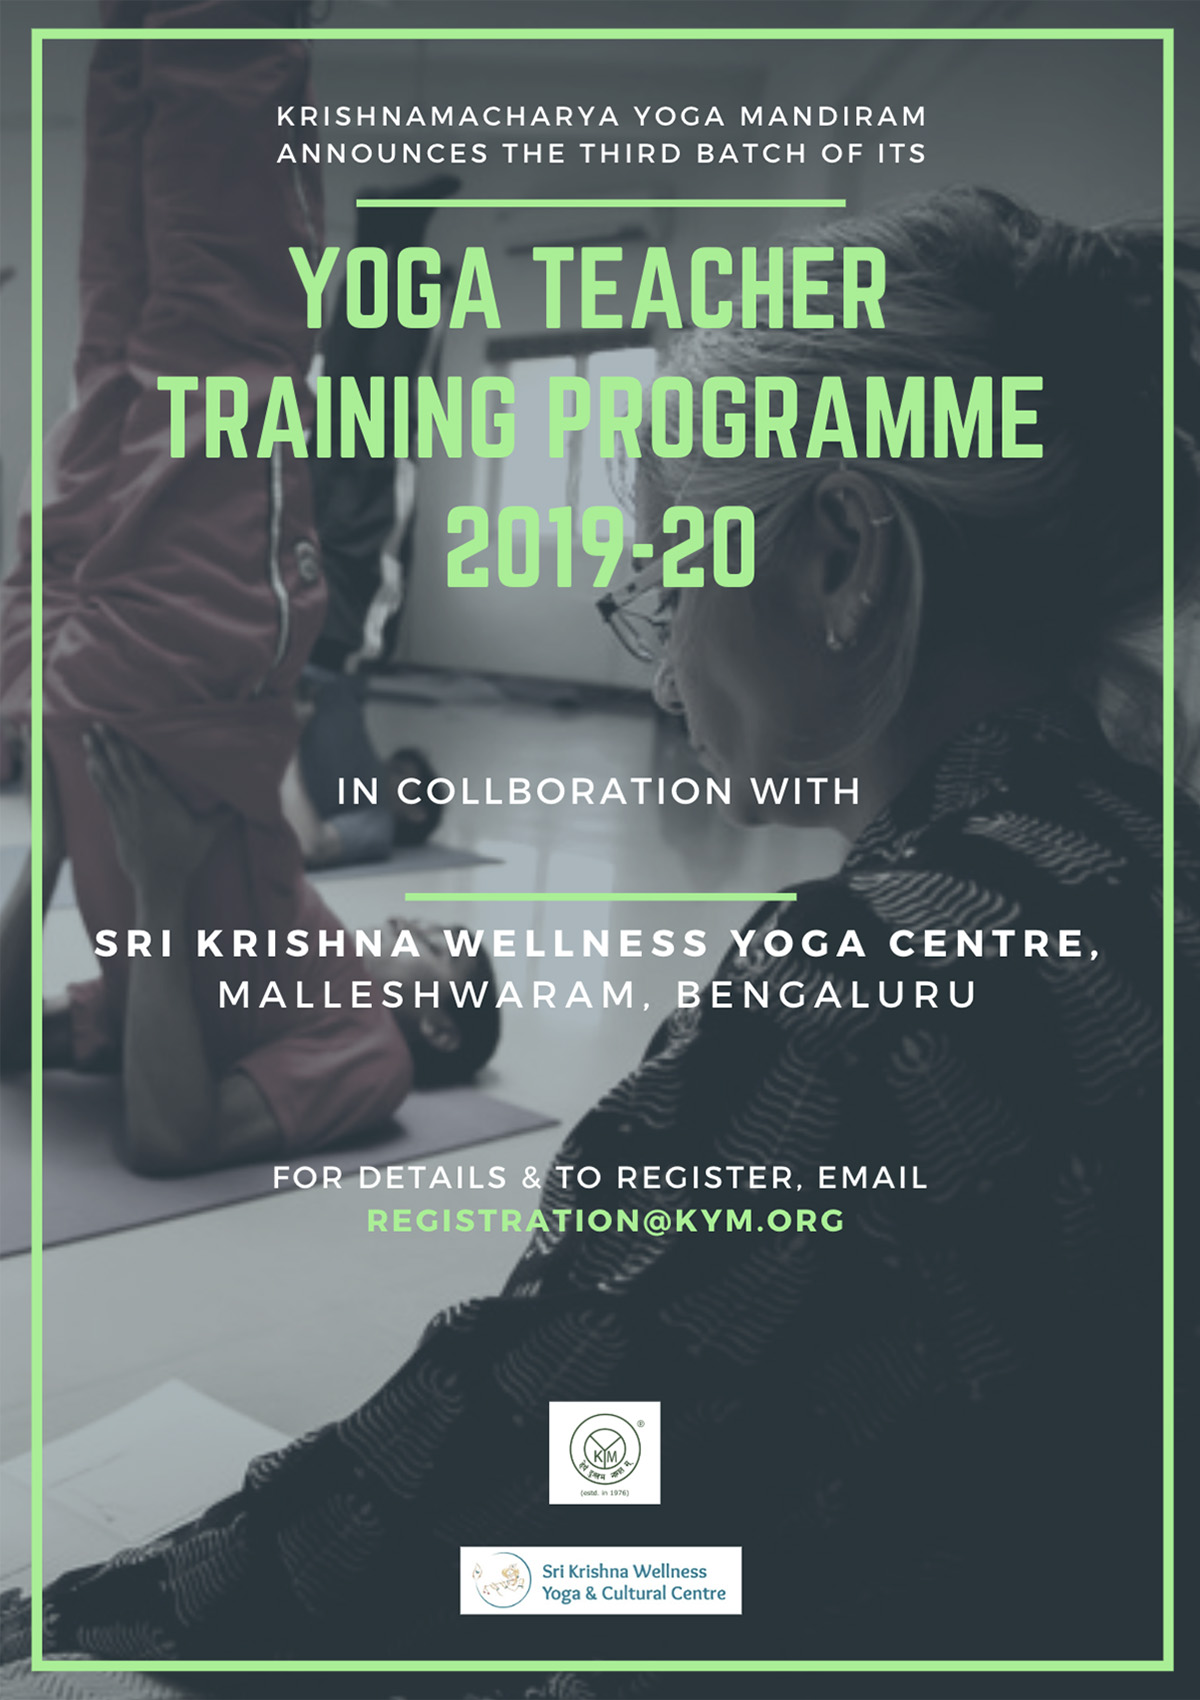 Yoga Teacher Training Programme 2019-20